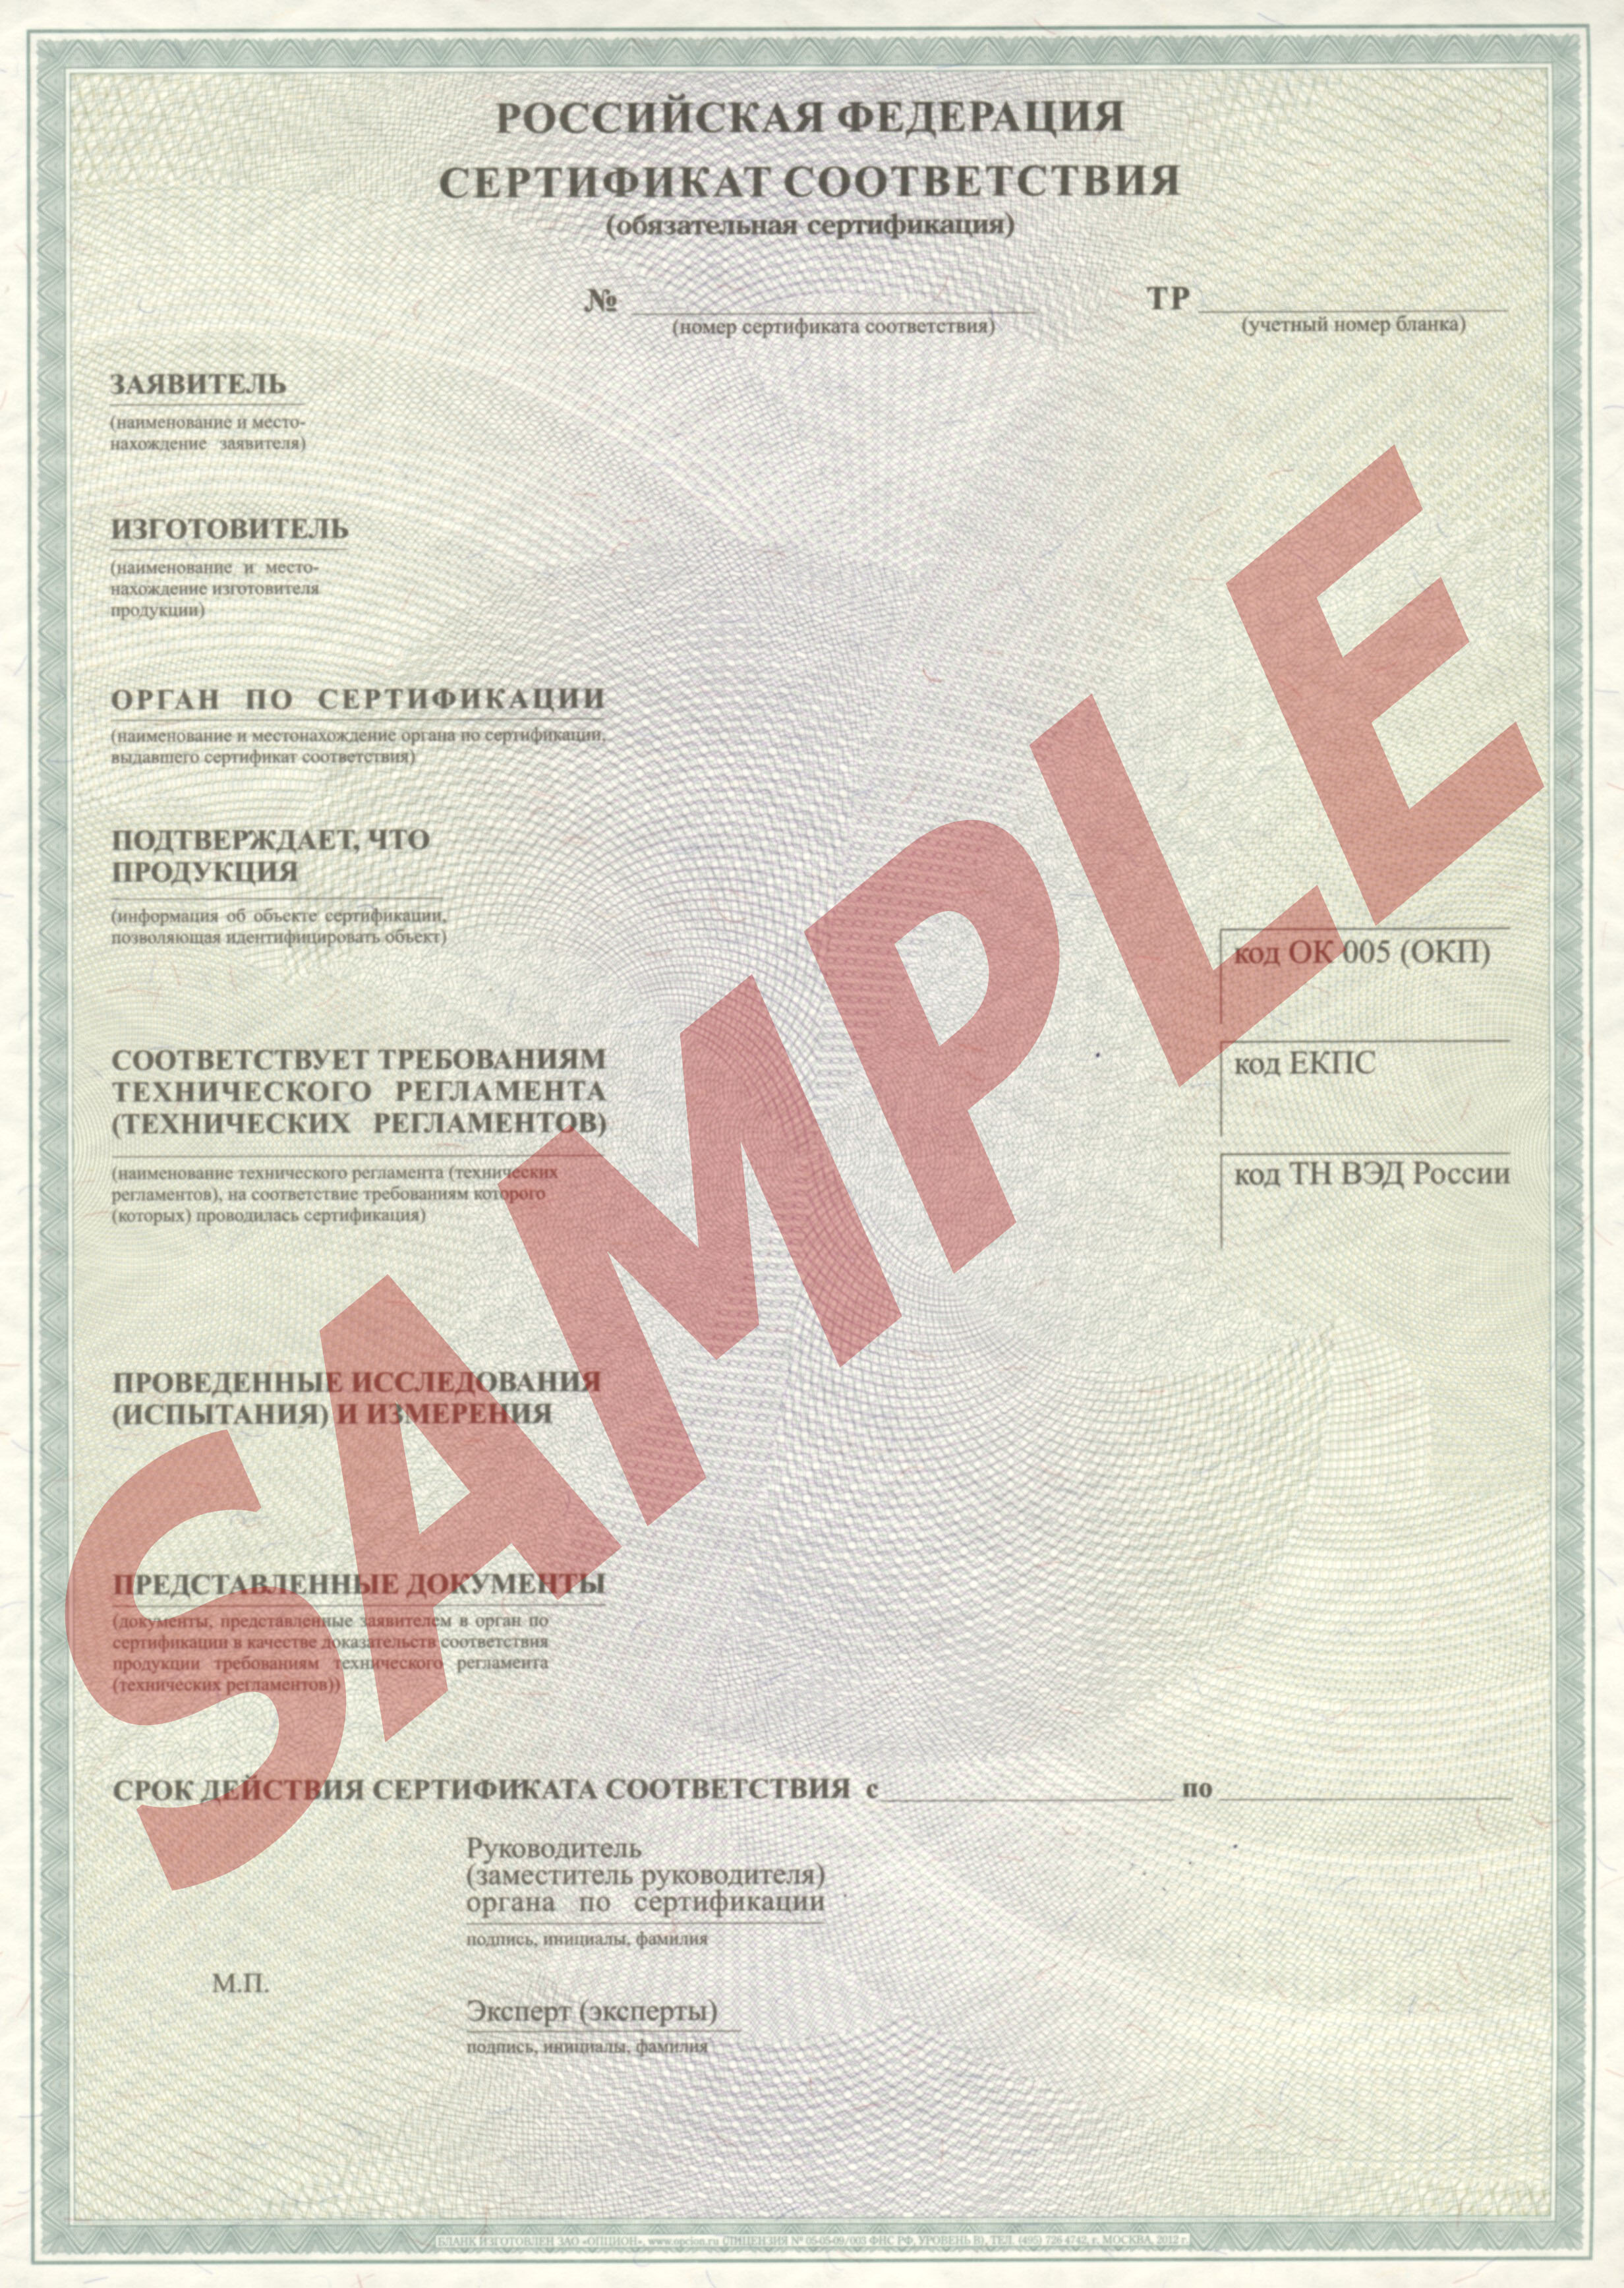 Icc in prague certificates of conformity of the products with the voluntary requirements of gost r certification system xflitez Choice Image